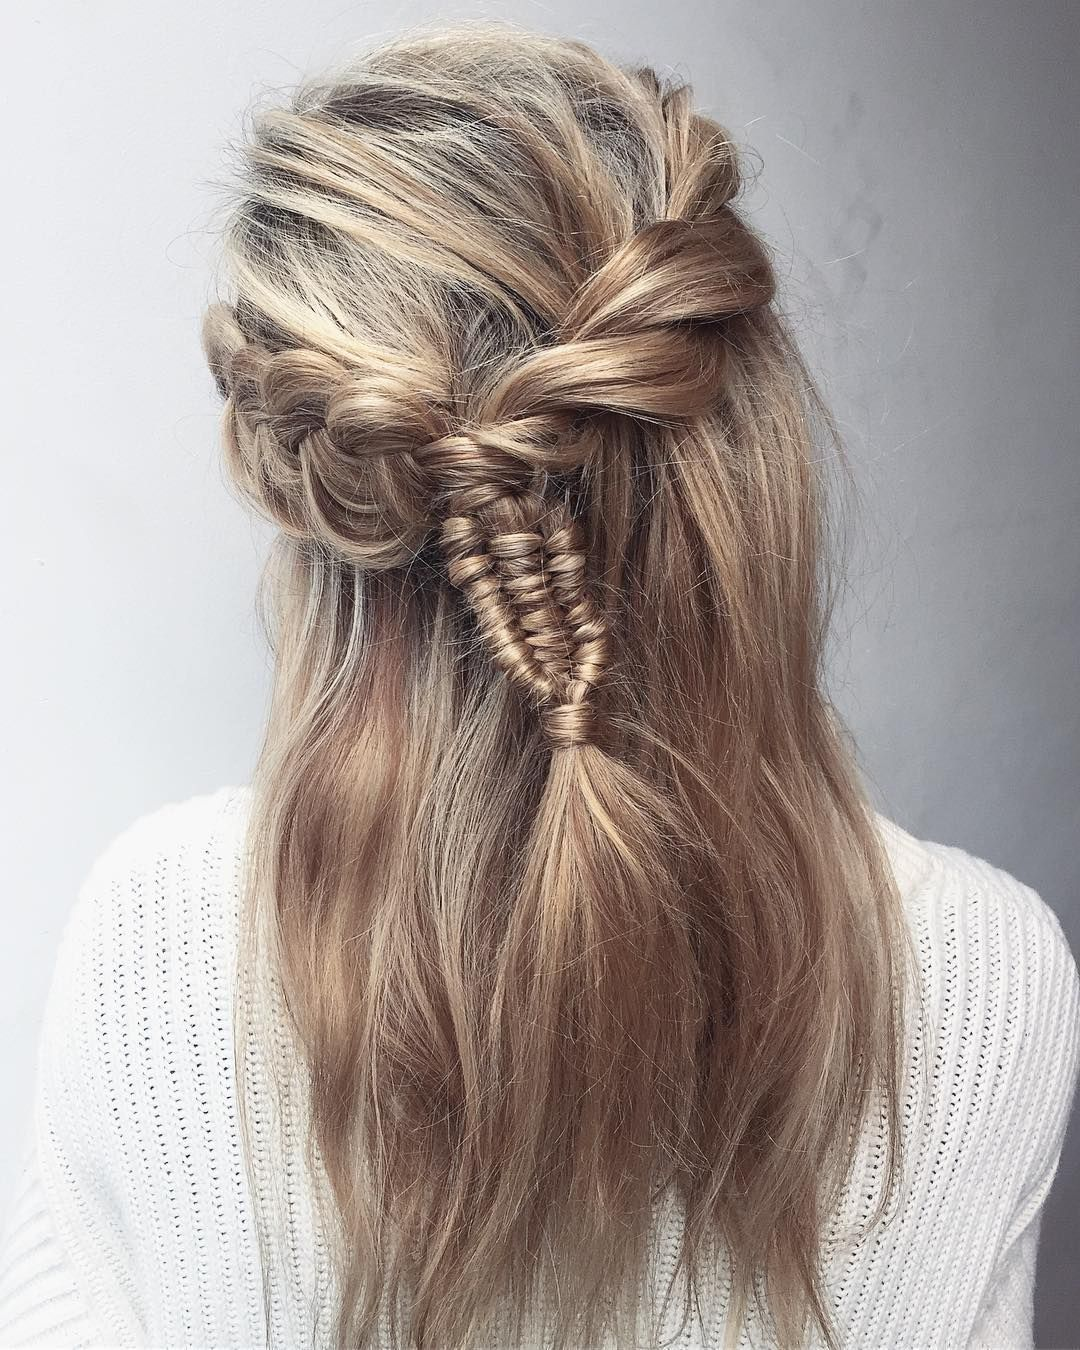 2019 year for girls- How to stylish make hair plates